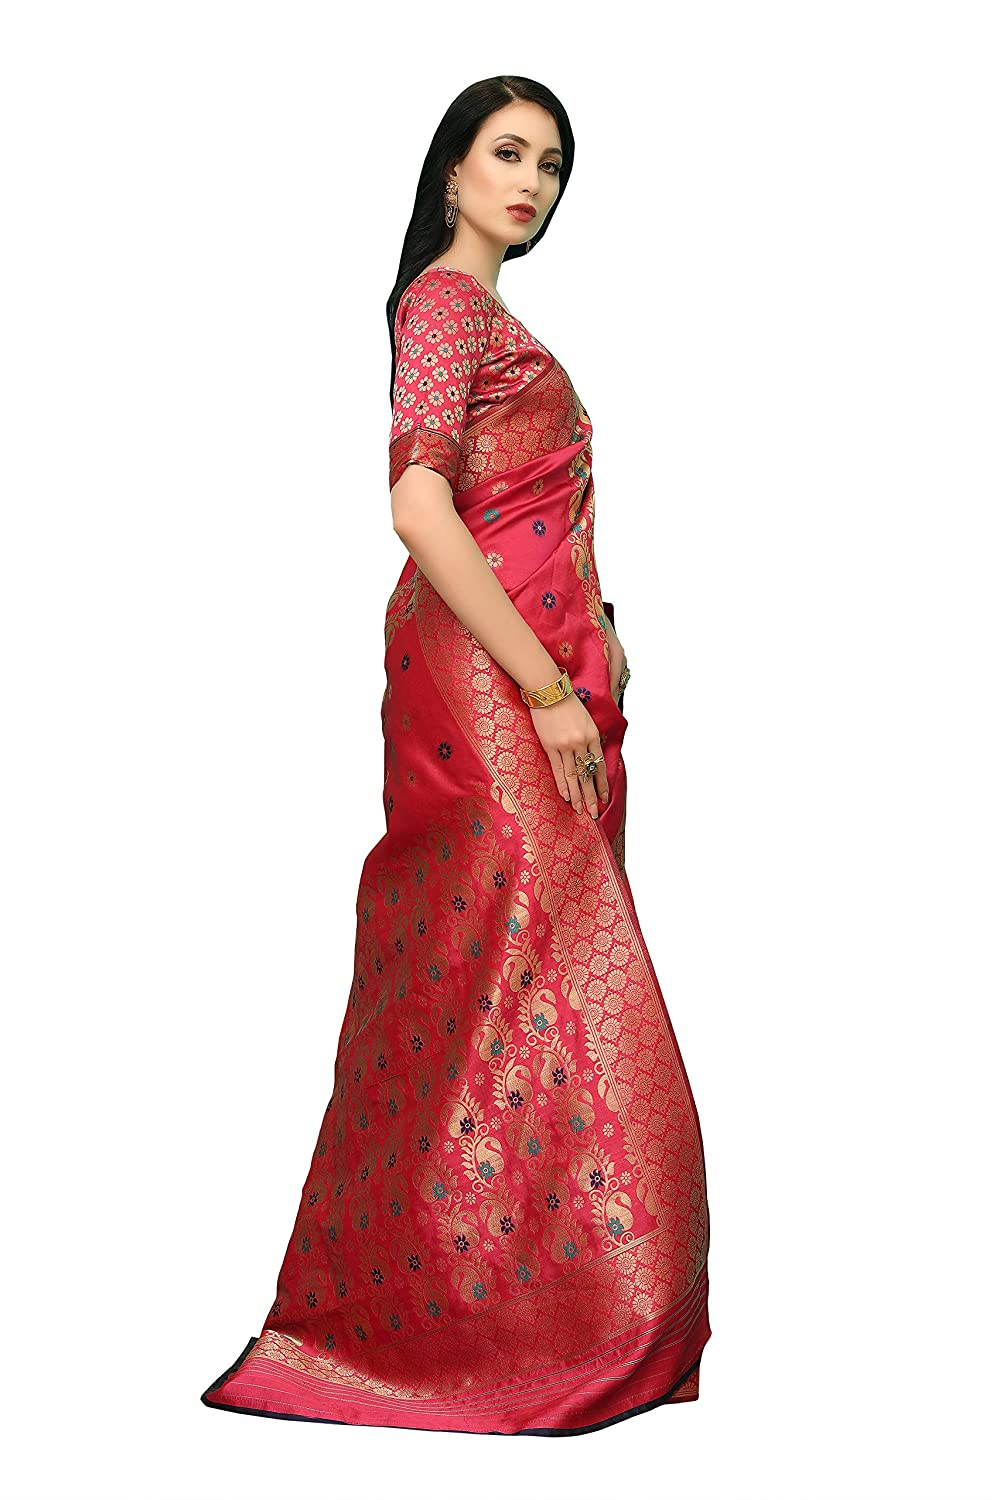 Best Art Silk Traditional Design Patterns Sarees For Women In India 2020